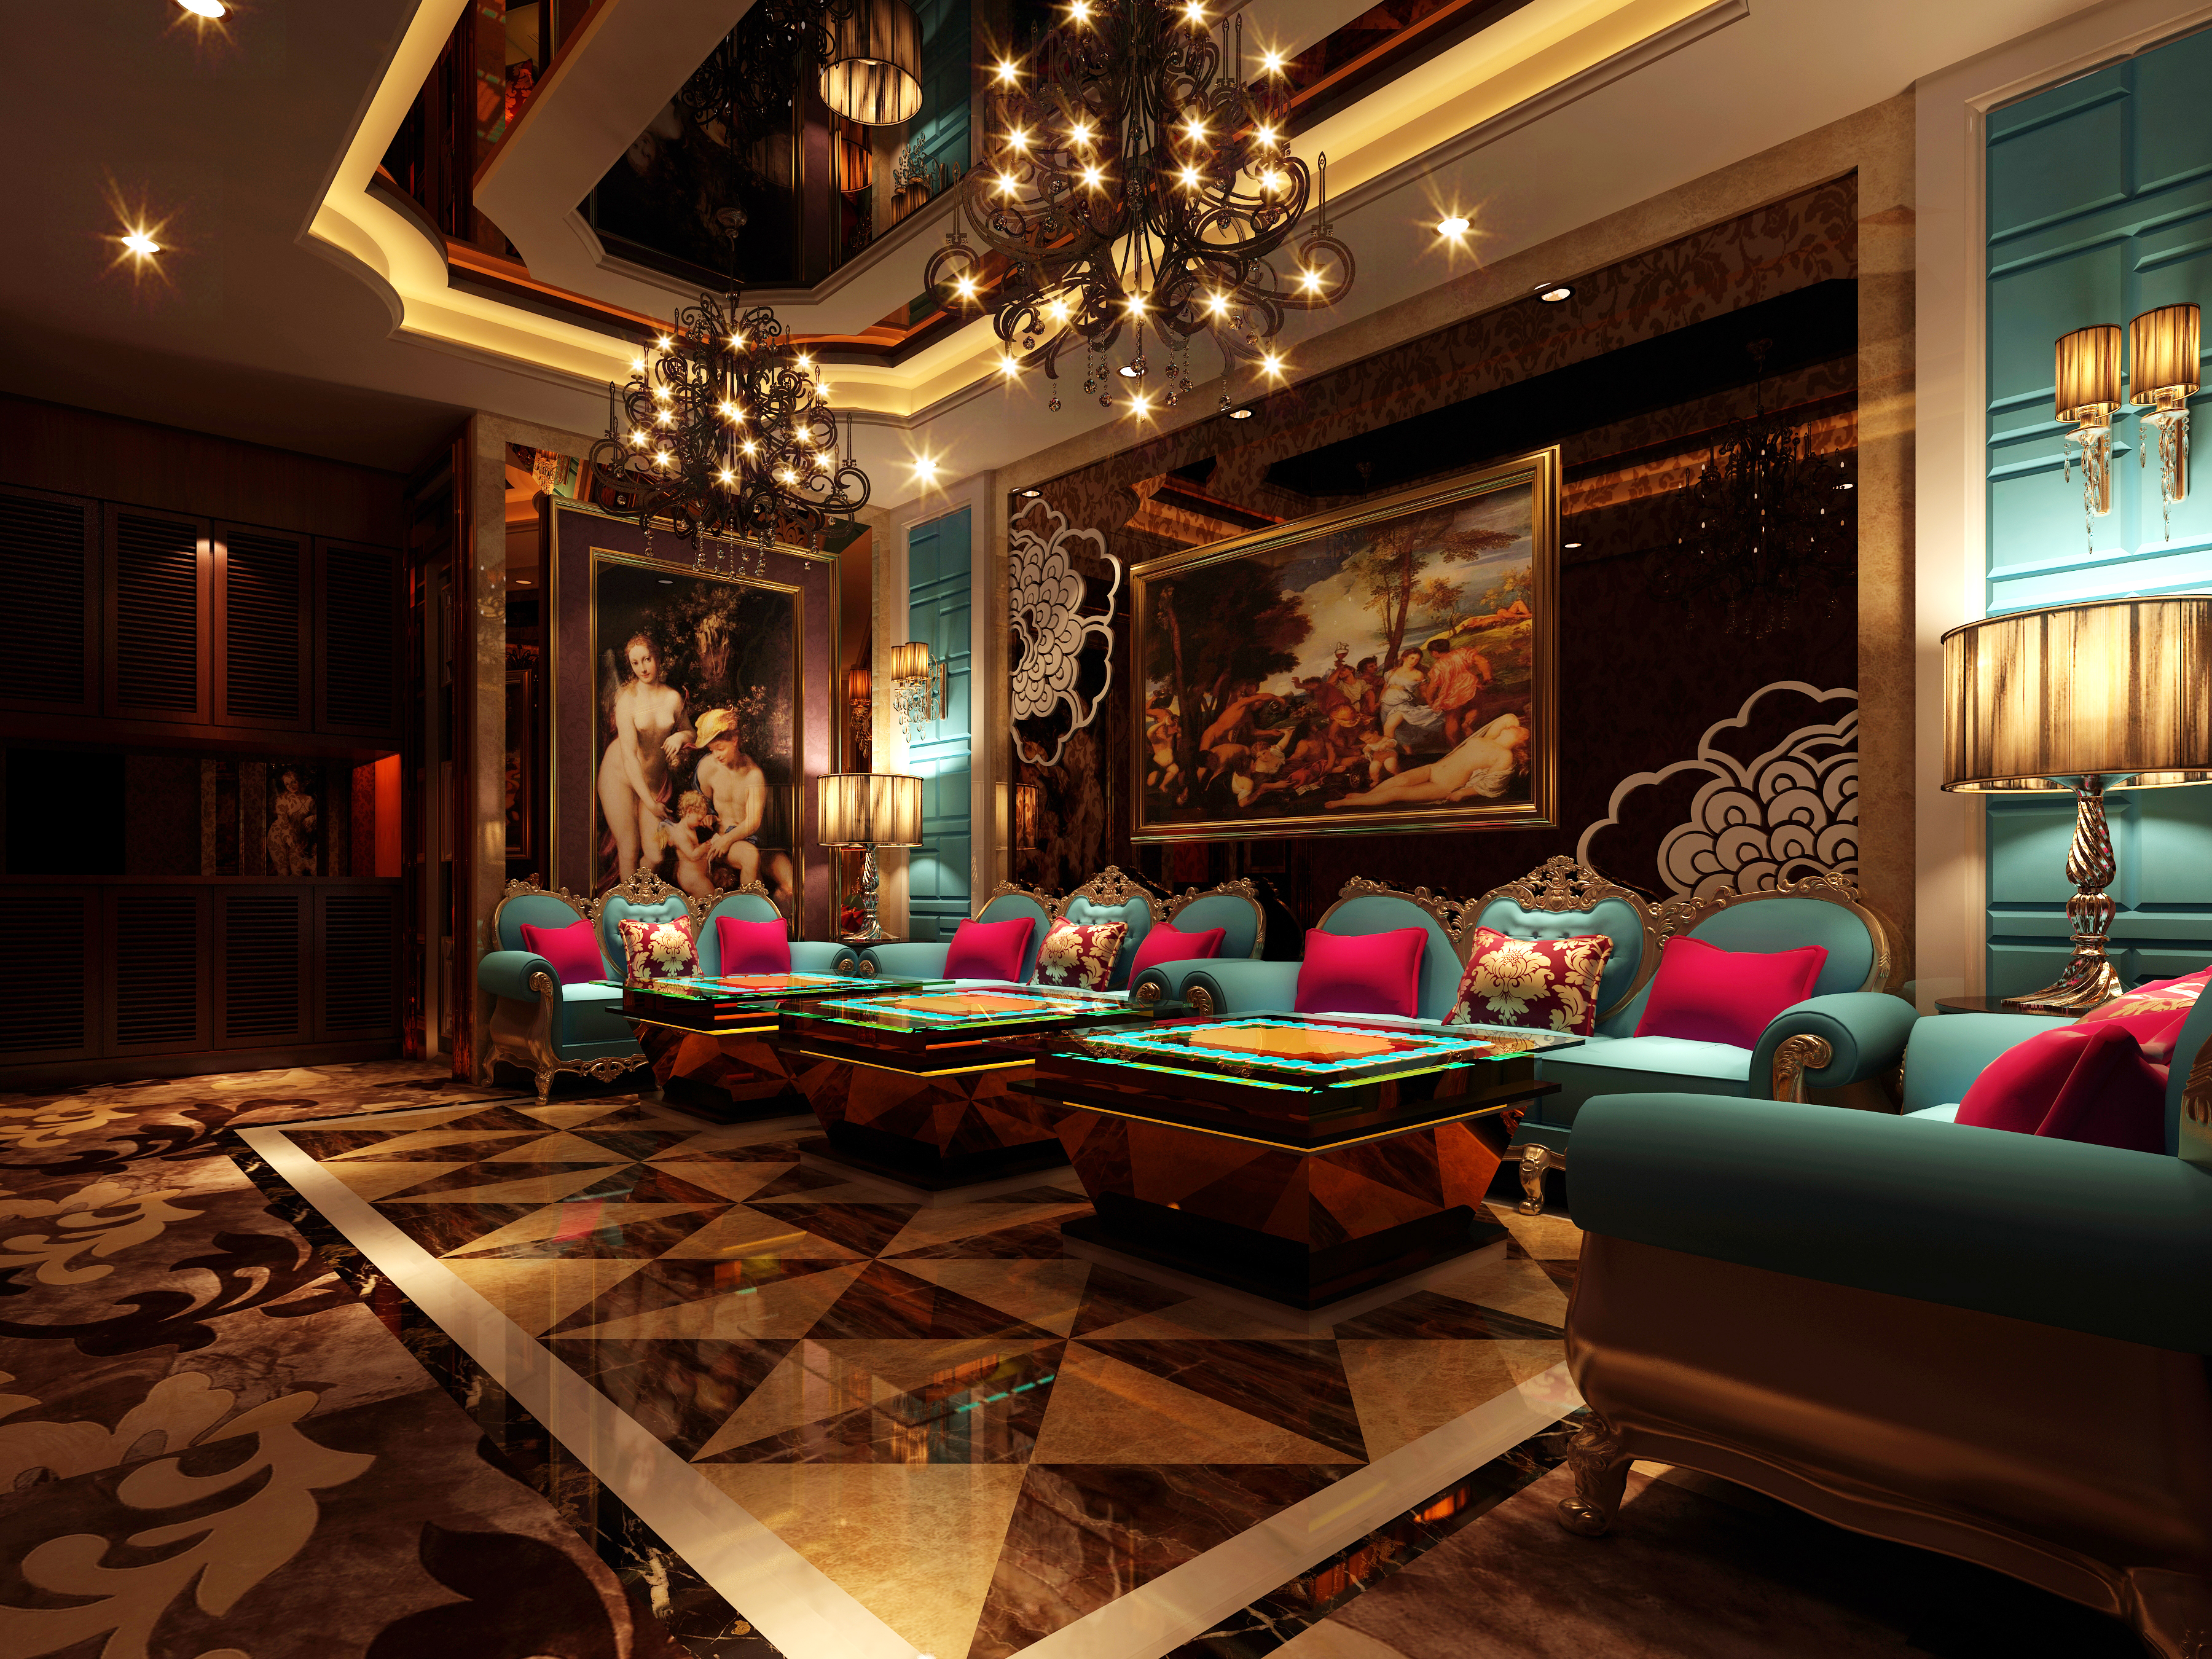 Luxurious restaurant vip lounge d model max cgtrader